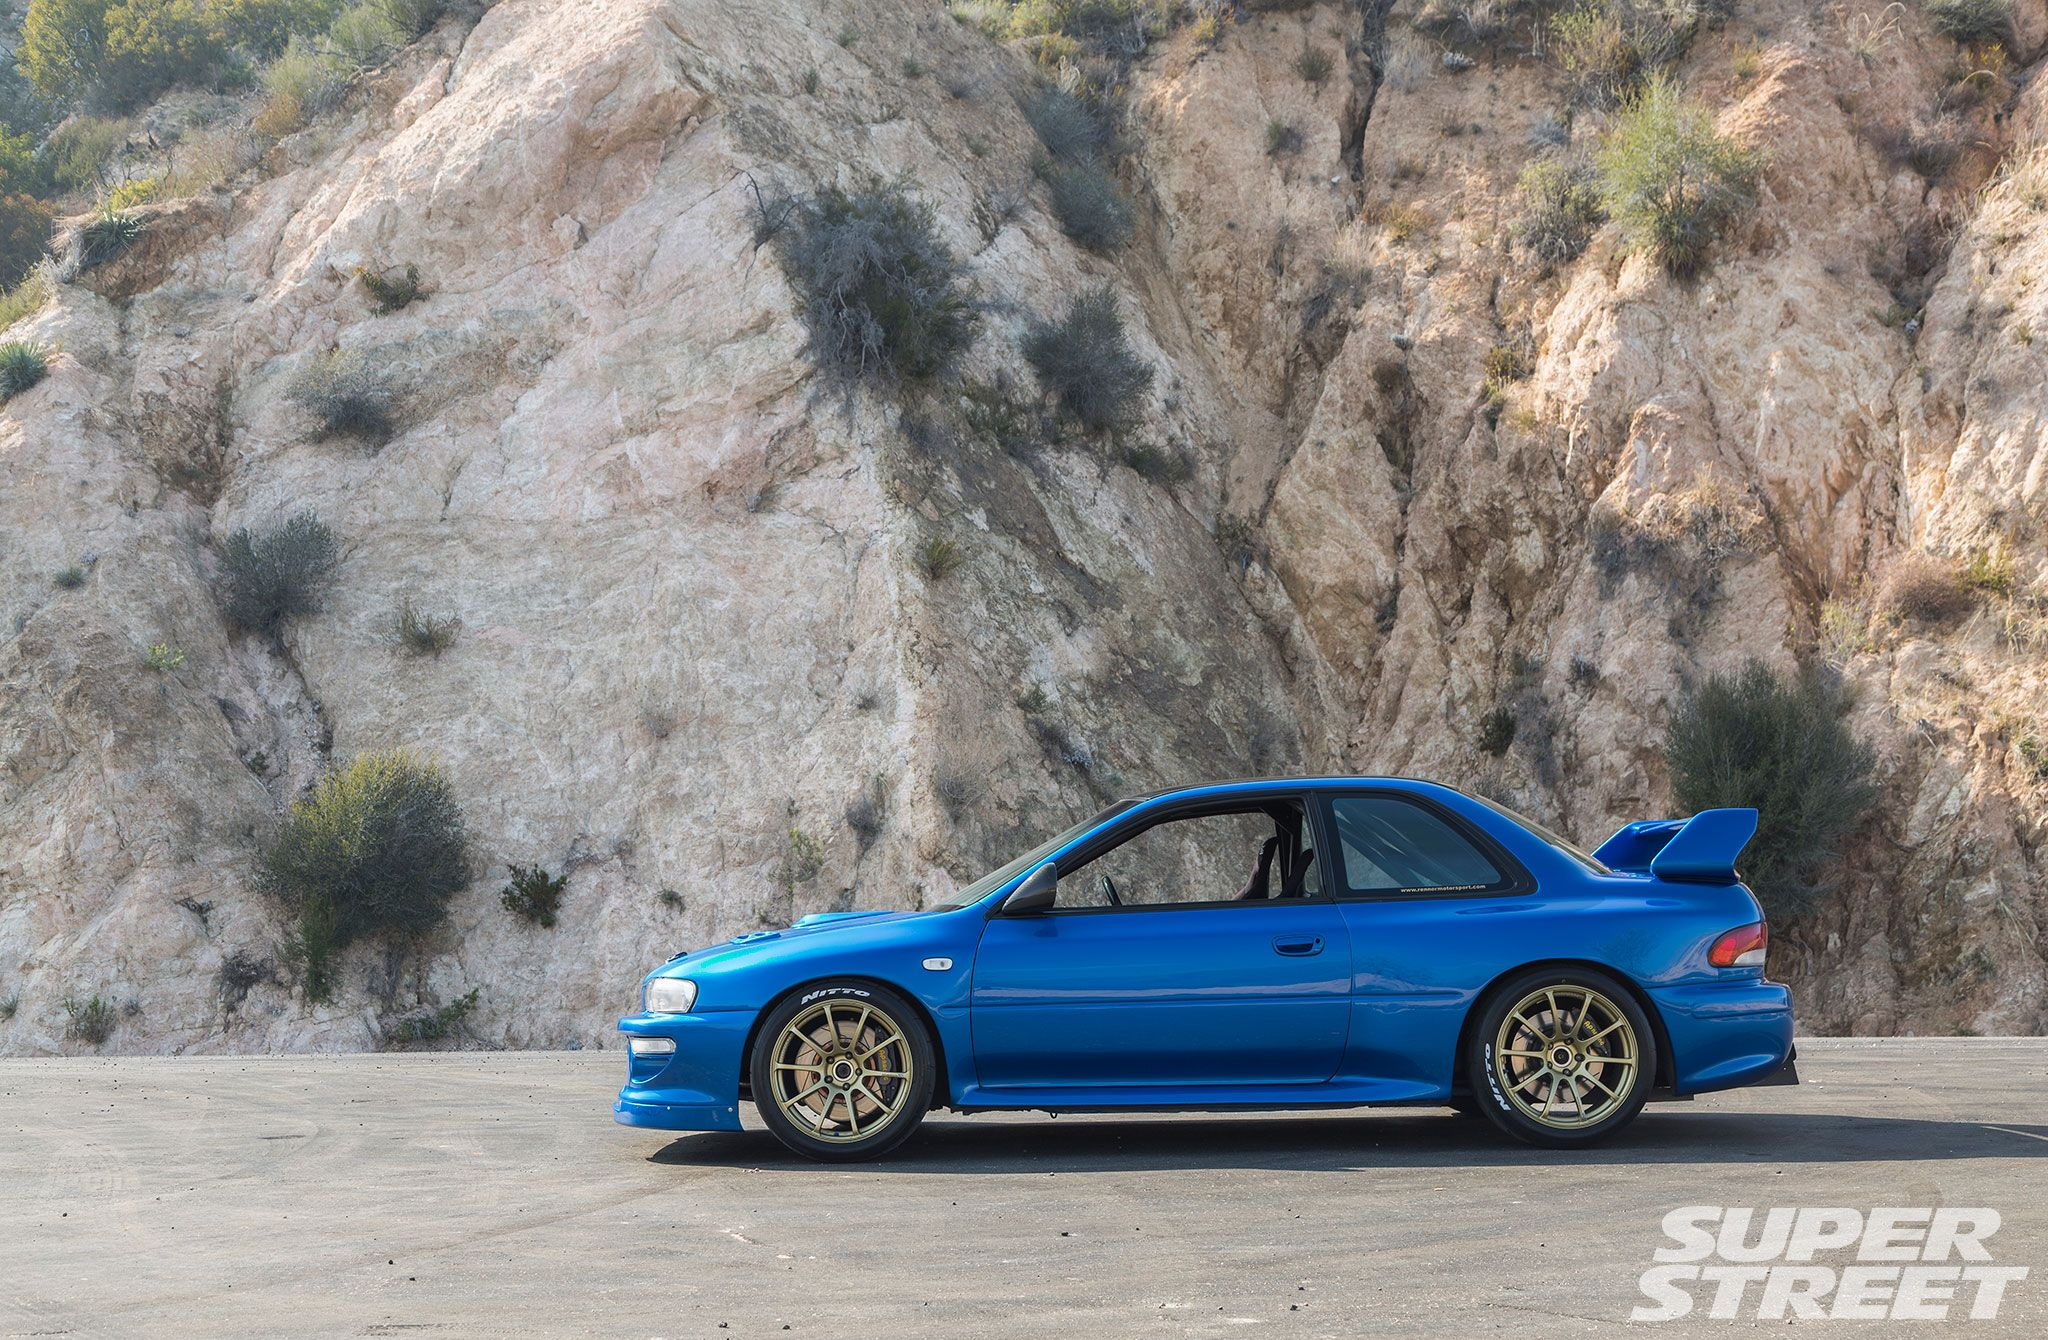 Super Street Feature: 1998 Subaru Impreza RS – Widebody GC8 Built For All the Right Reasons